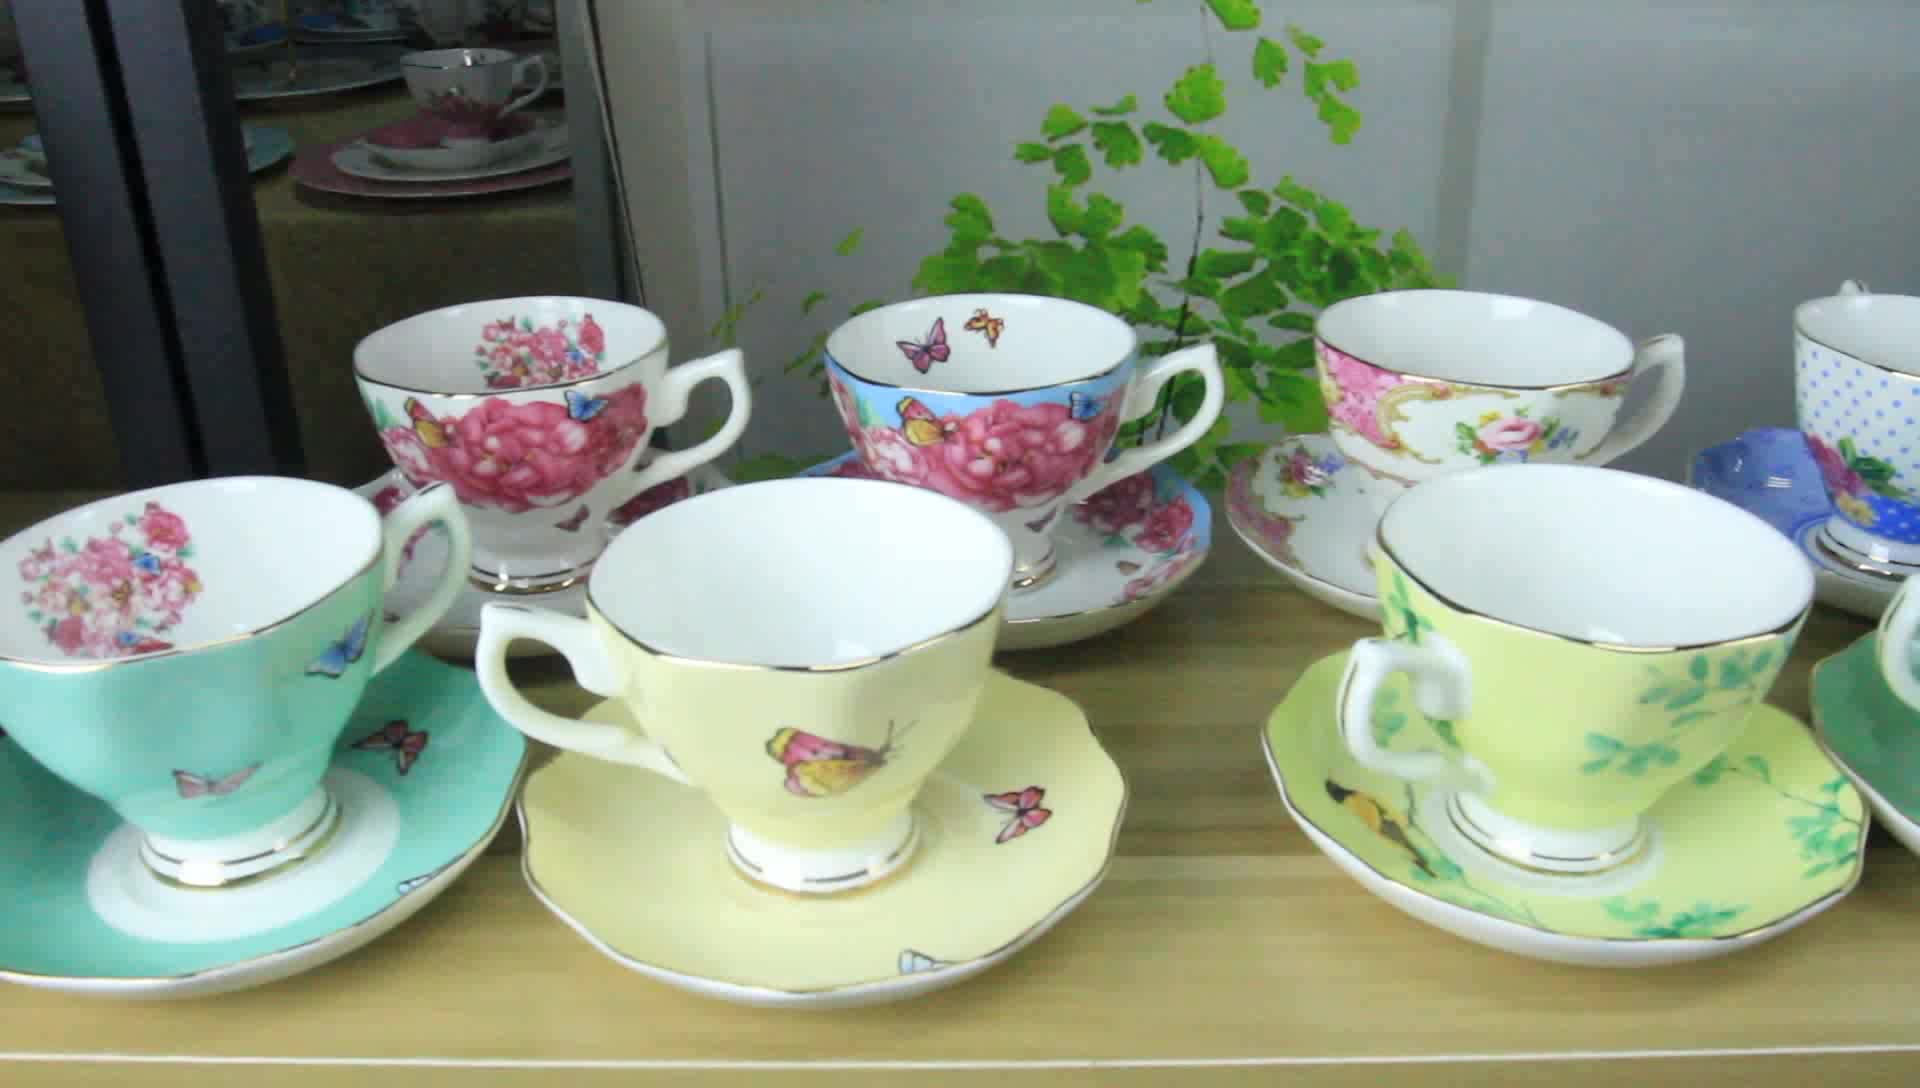 China Factory Wholesale Coffee Tea Cup And Saucer,Fine Ceramic Cup And Saucer - Buy Cup And ...